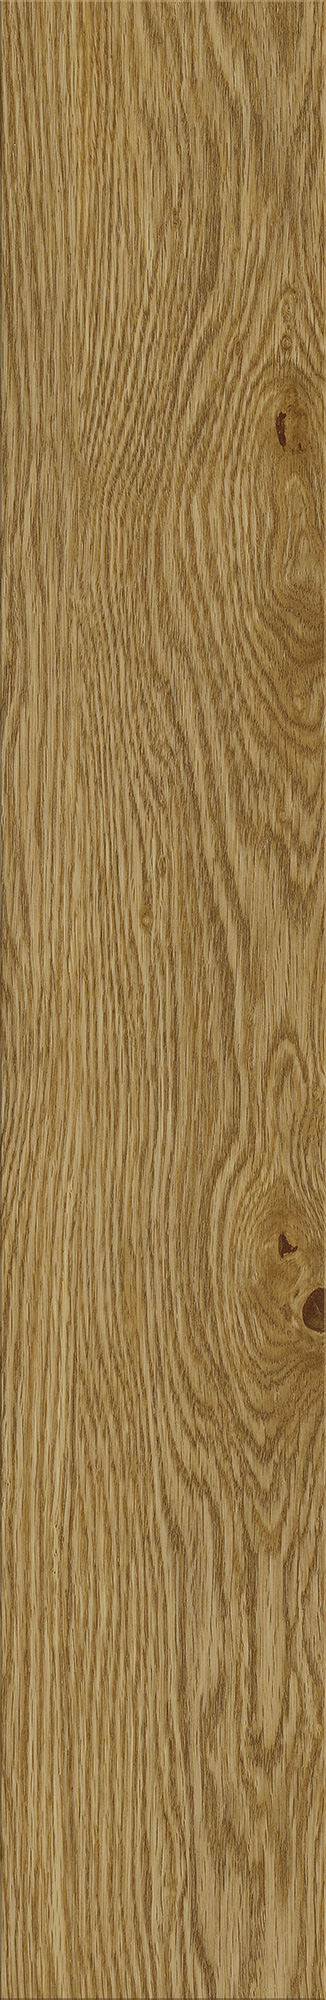 Luvanto Country Oak Vinyl Click Flooring bulk buy LVT large image